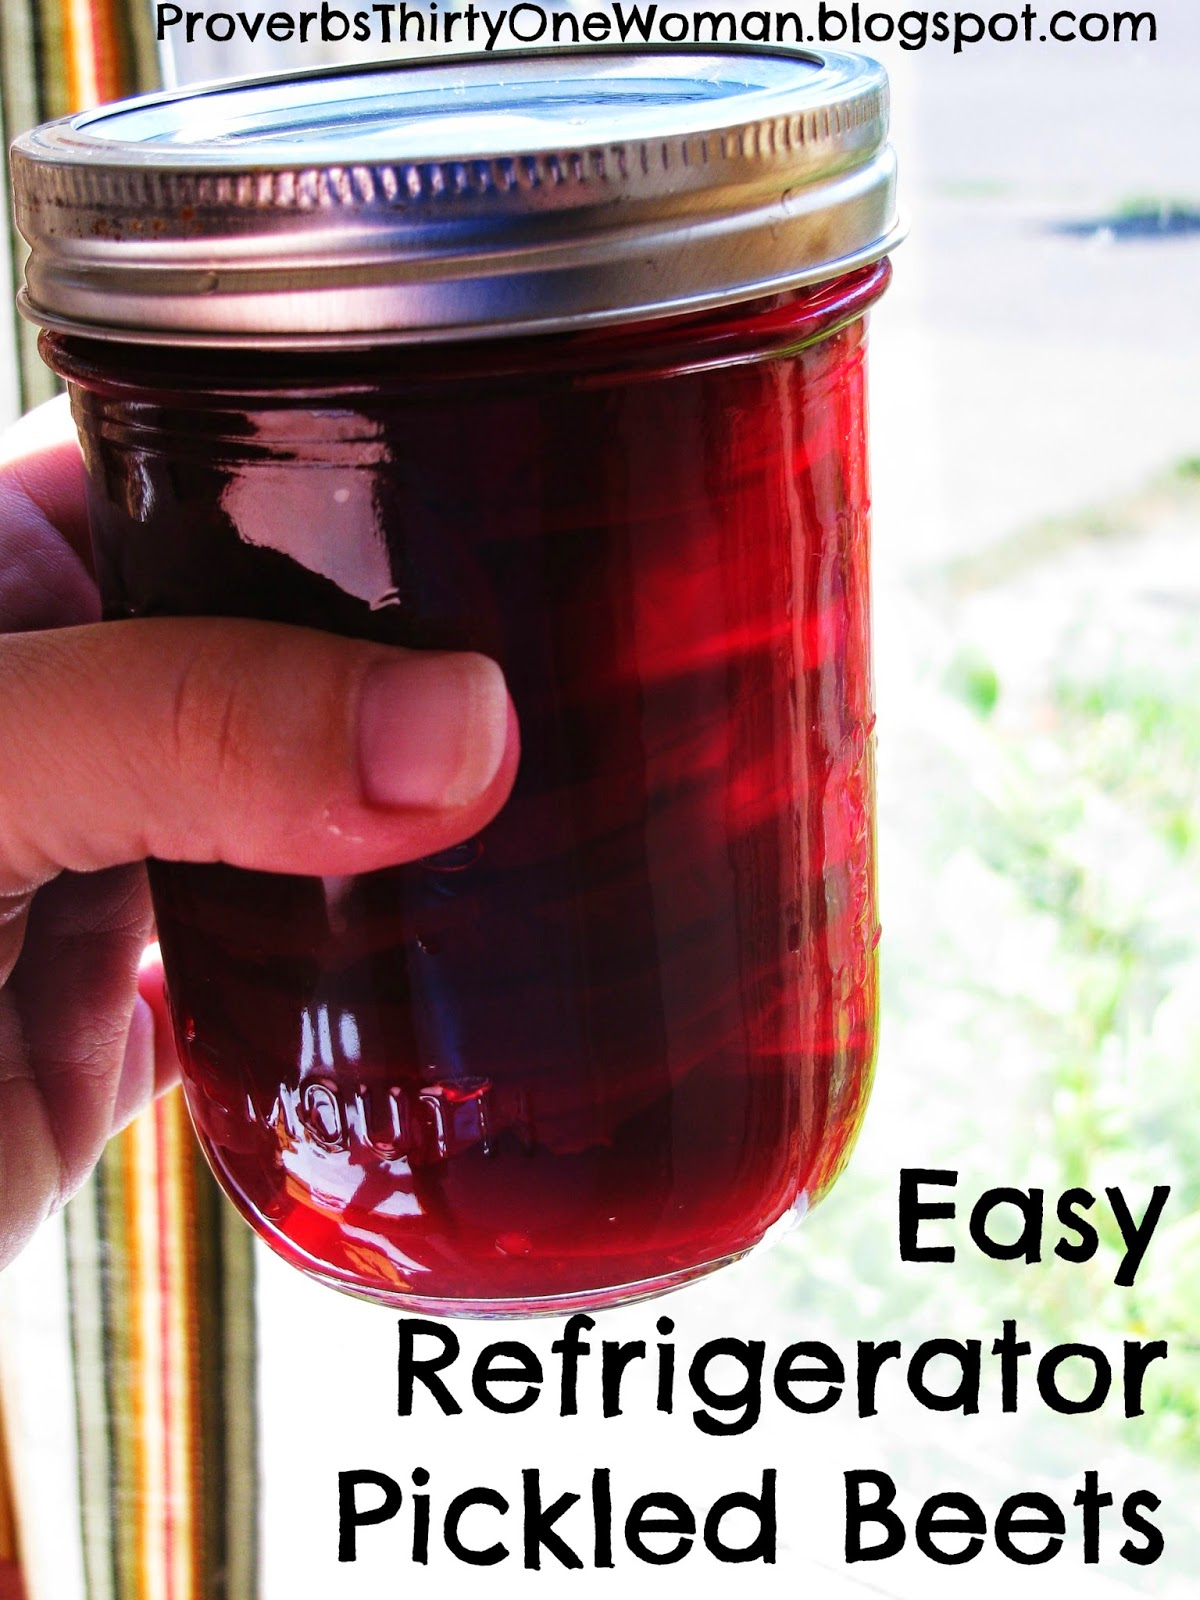 Easy Refrigerator Pickled Beets